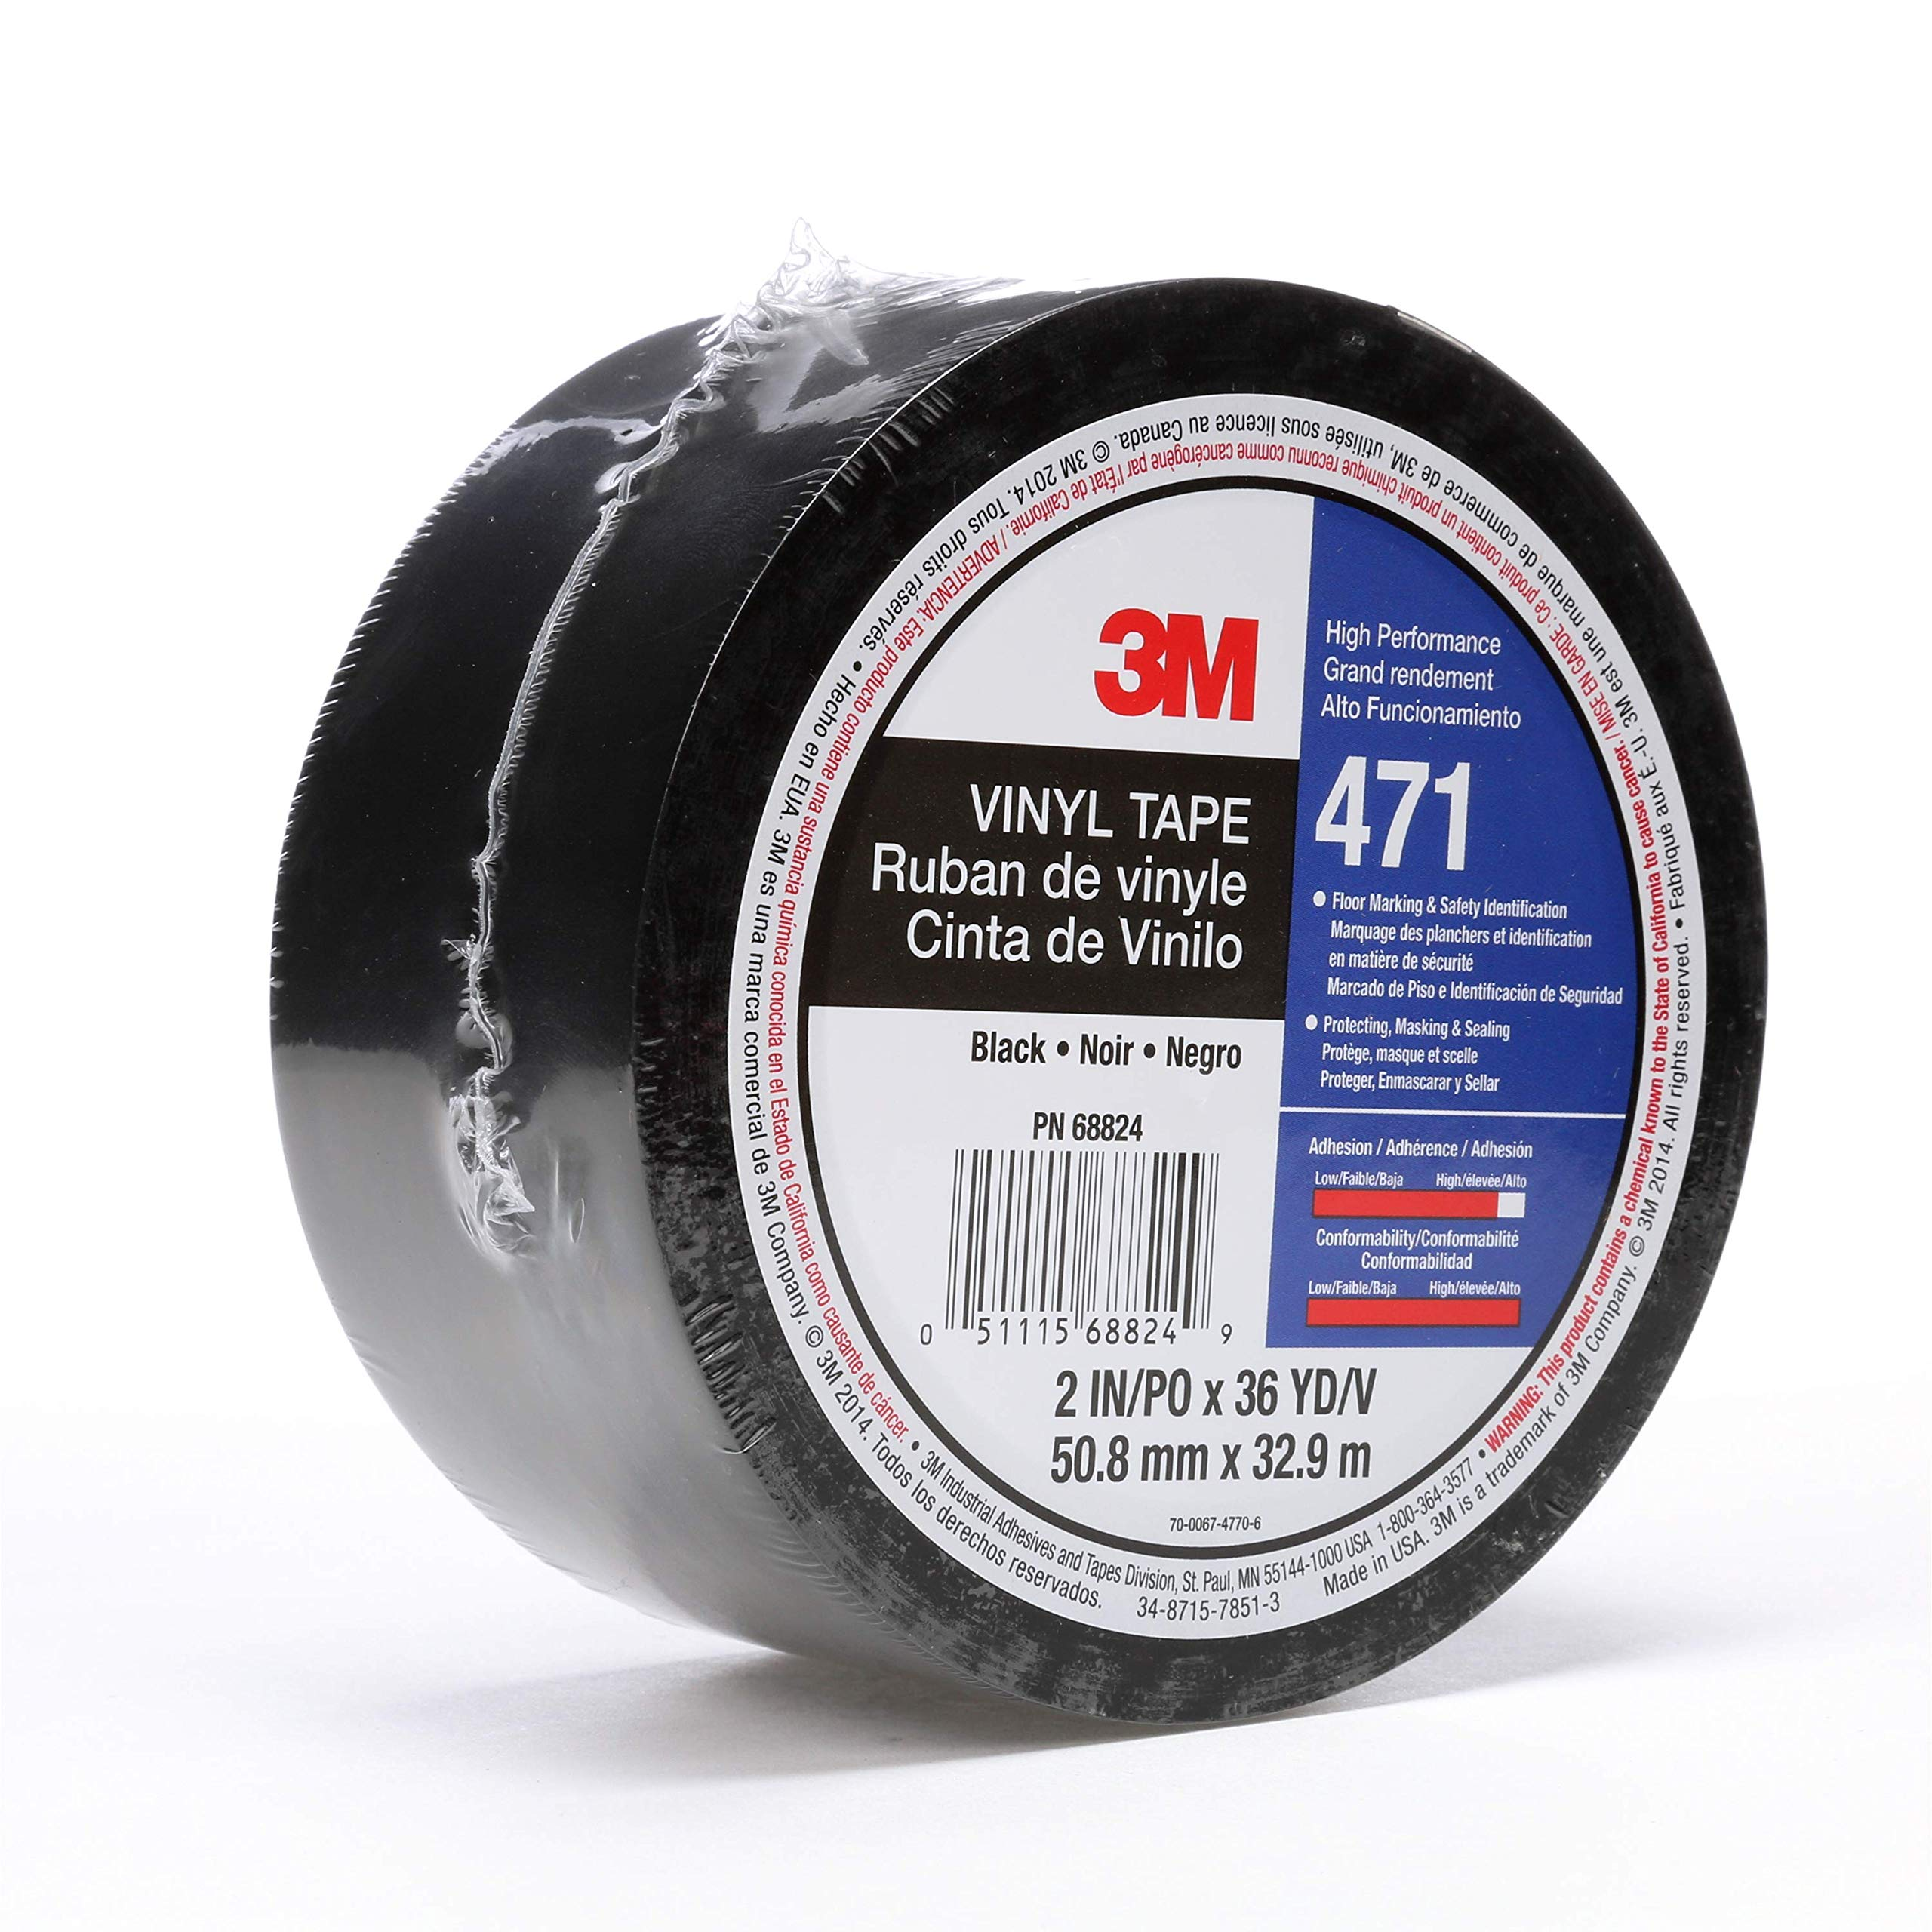 3M Vinyl Tape 471, 2 in x 36 yd, Black, 1 Roll, Paint Alternative for Floor Marking, Social Distancing, Color Coding, Safety Marking